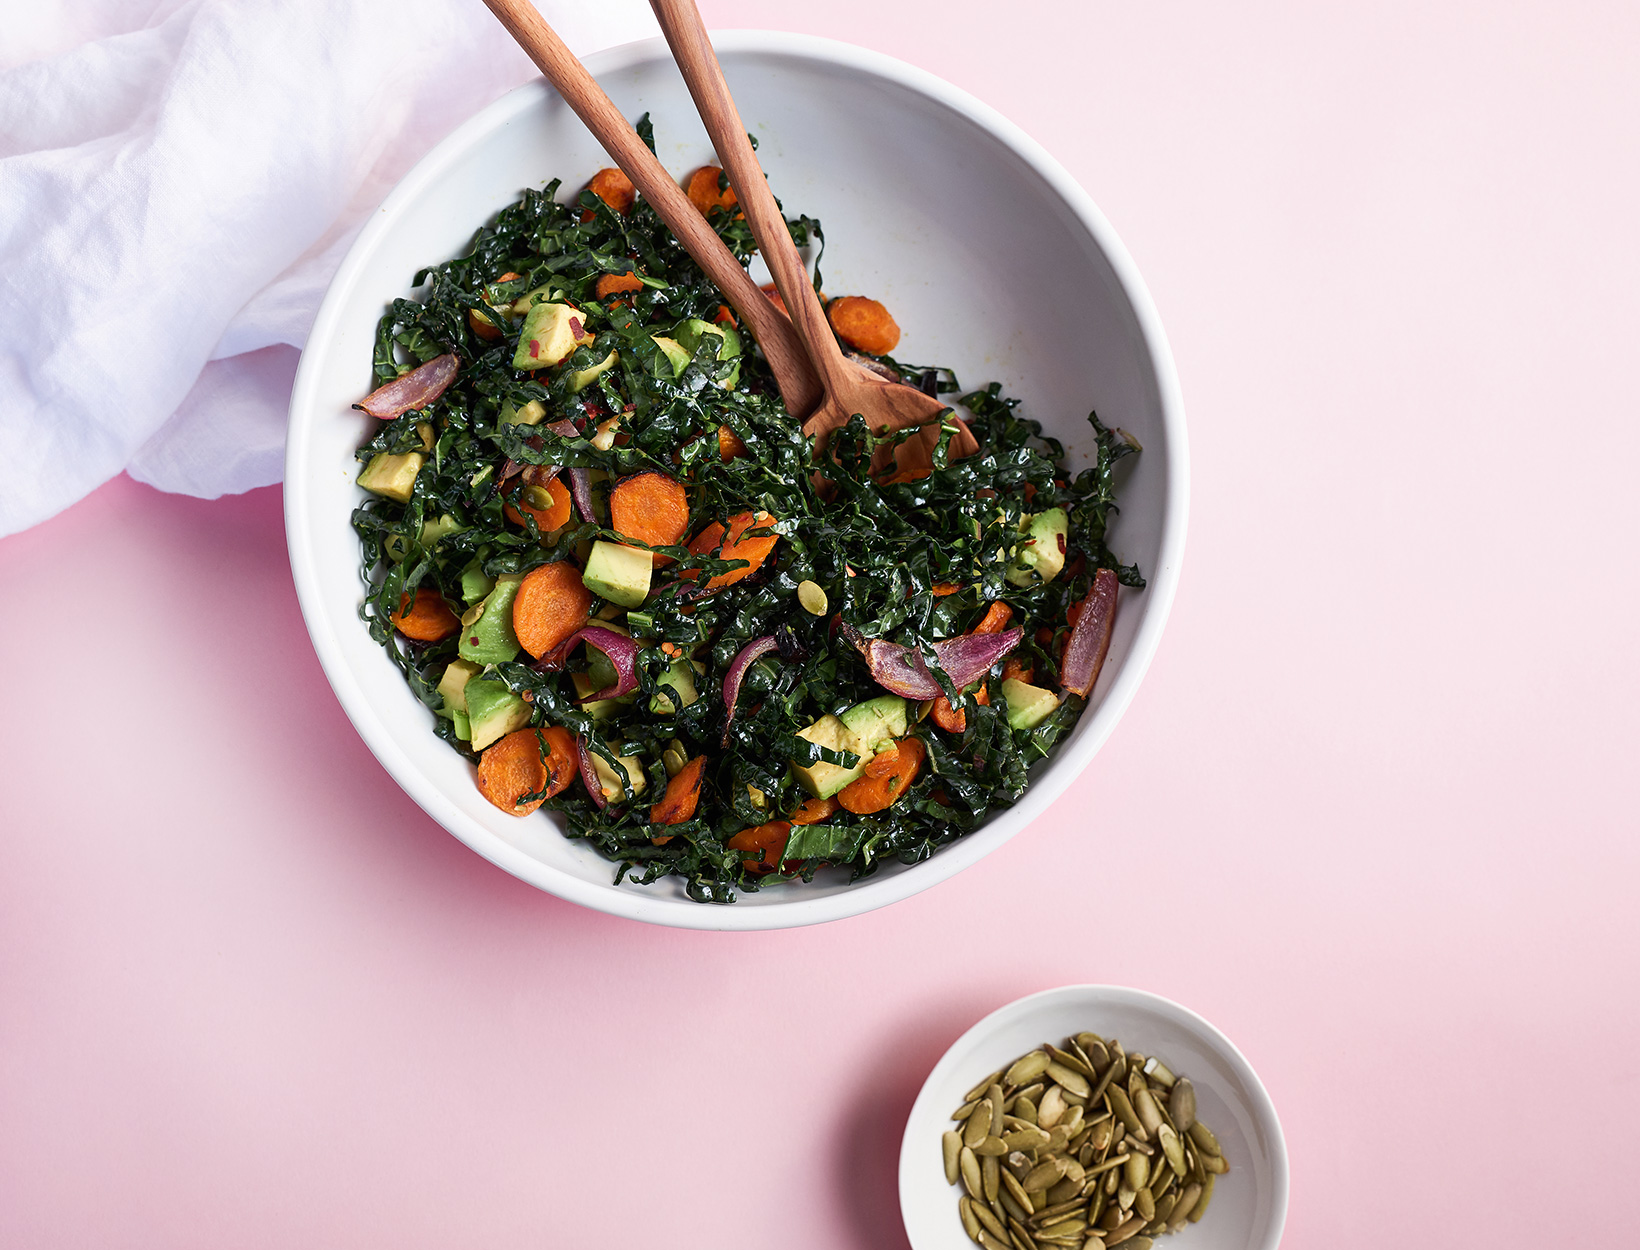 Kale and Avocado Salad with Roasted Carrots